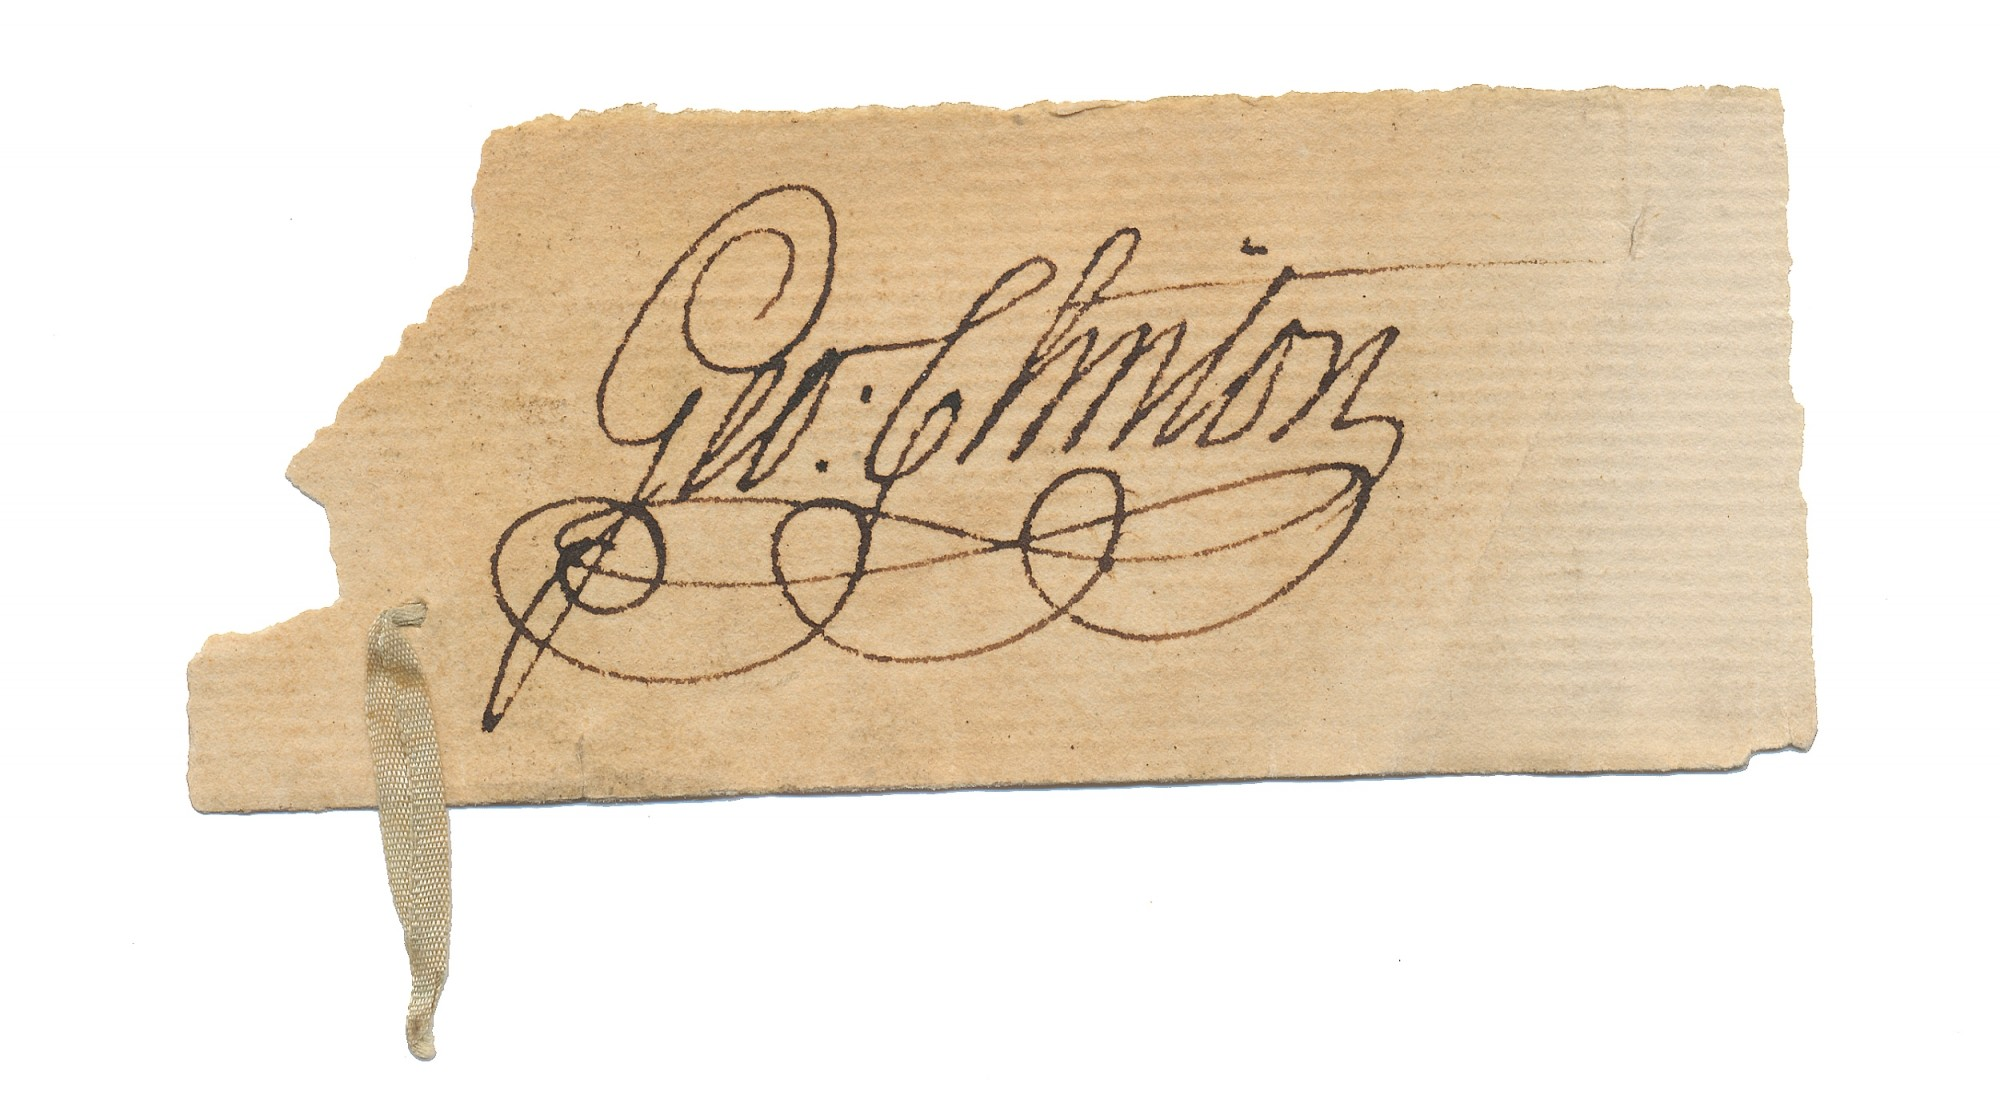 CLIPPED SIGNATURE OF US VICE PRESIDENT GEORGE CLINTON